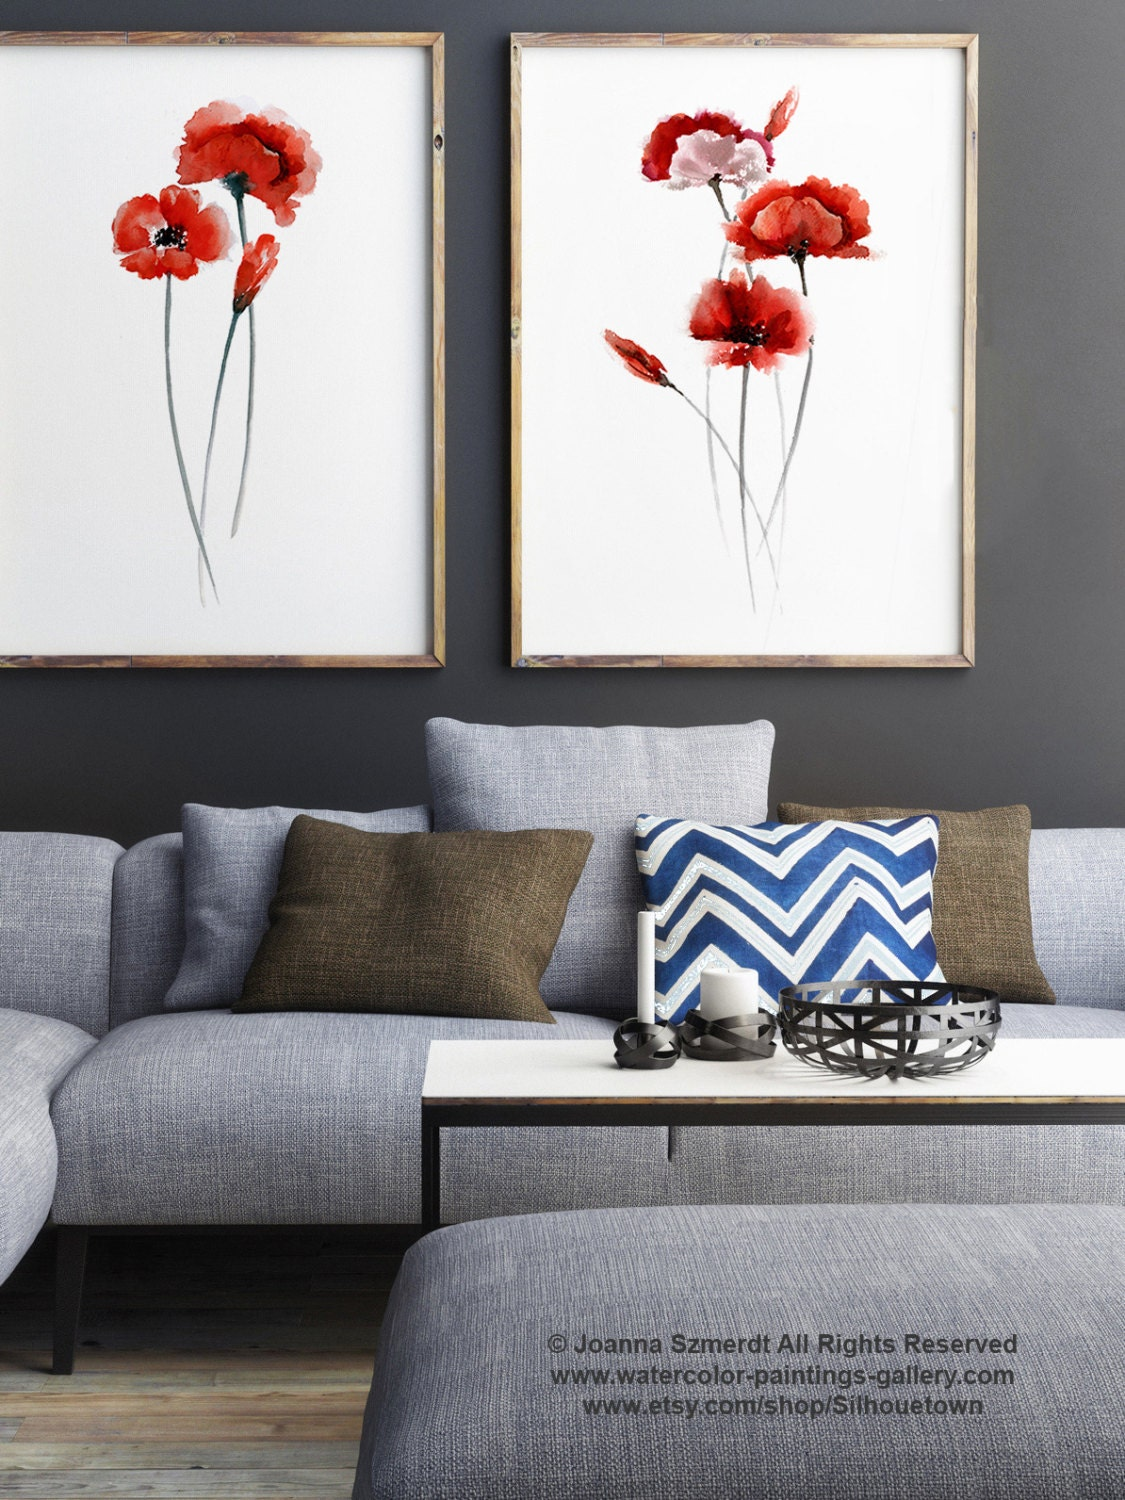 Poppy Flowers Illustration Set Of 2 Poppies Red Home Decor Home Decorators Catalog Best Ideas of Home Decor and Design [homedecoratorscatalog.us]